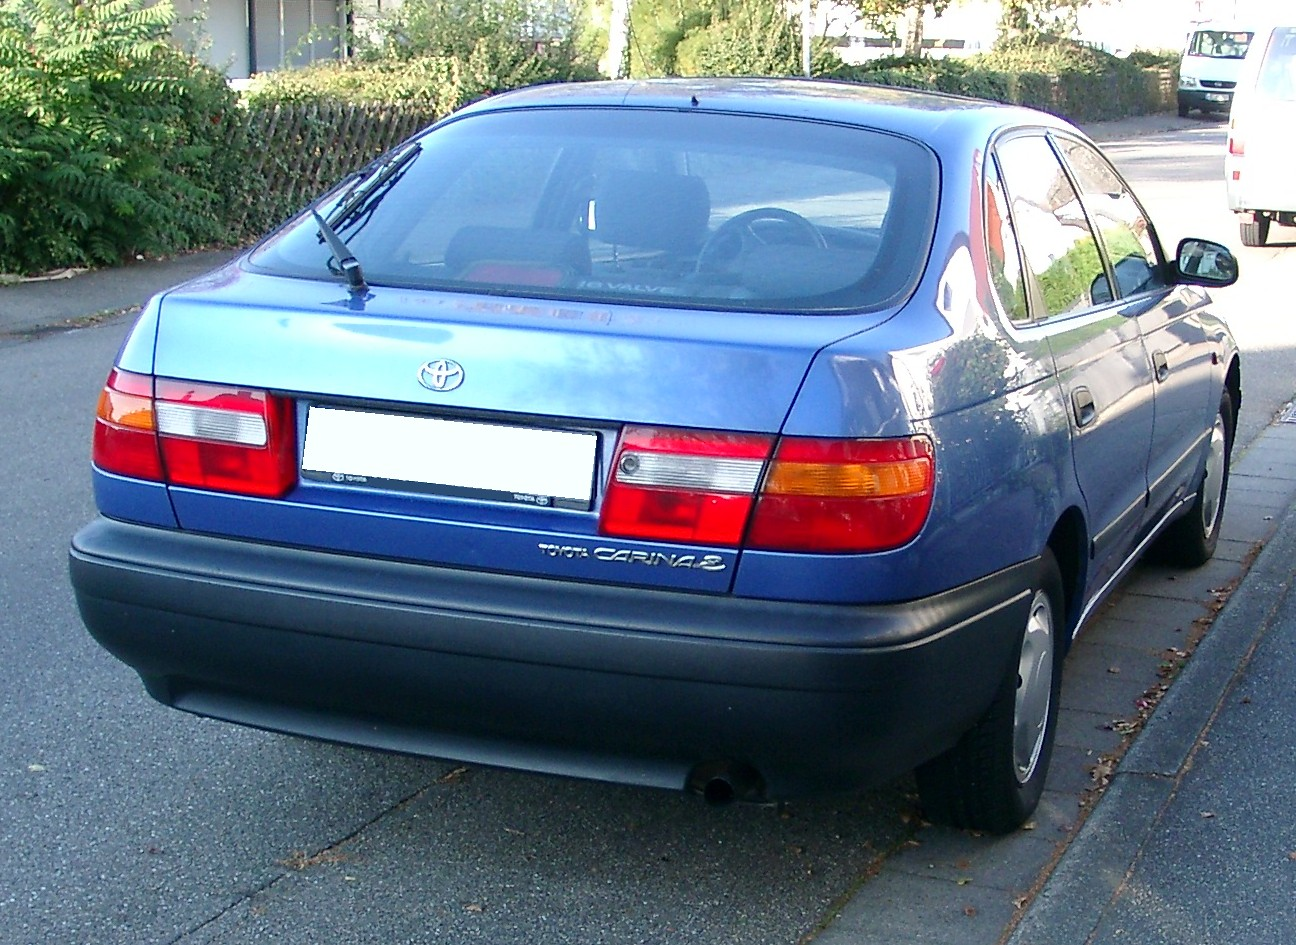 Toyota carina 2014 photo - 3